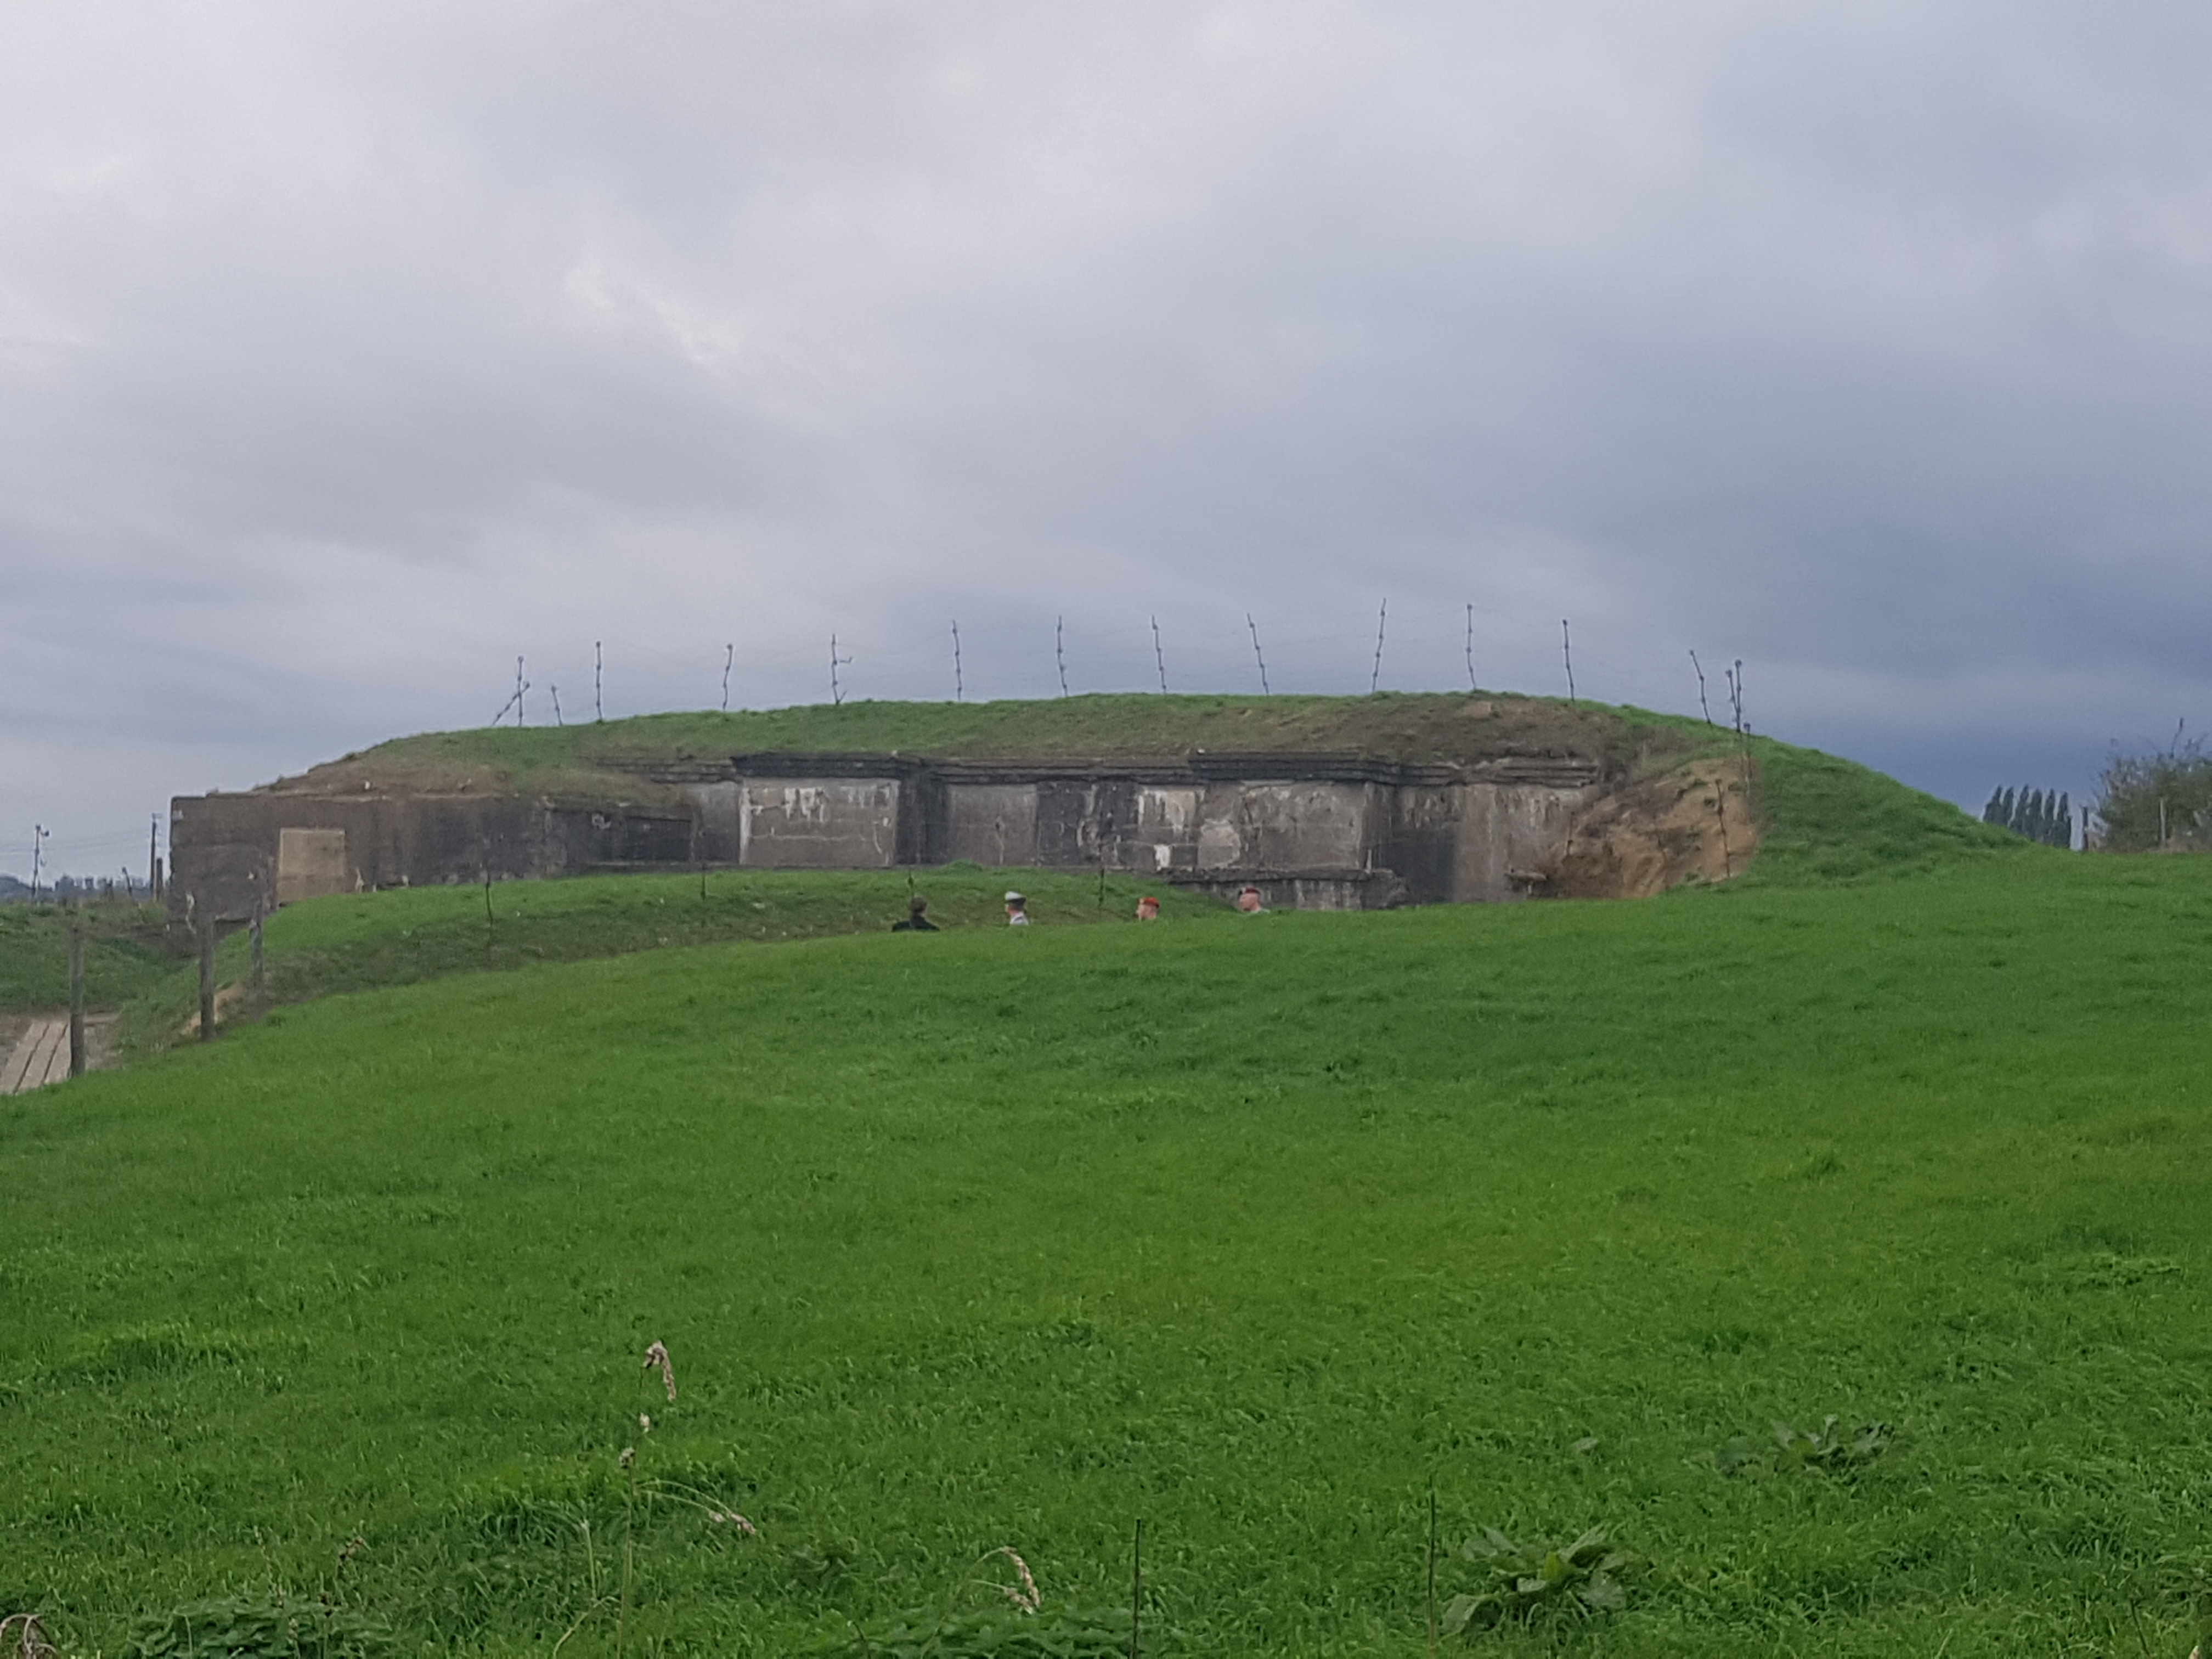 Deutscher Kommandobunker aus 1915